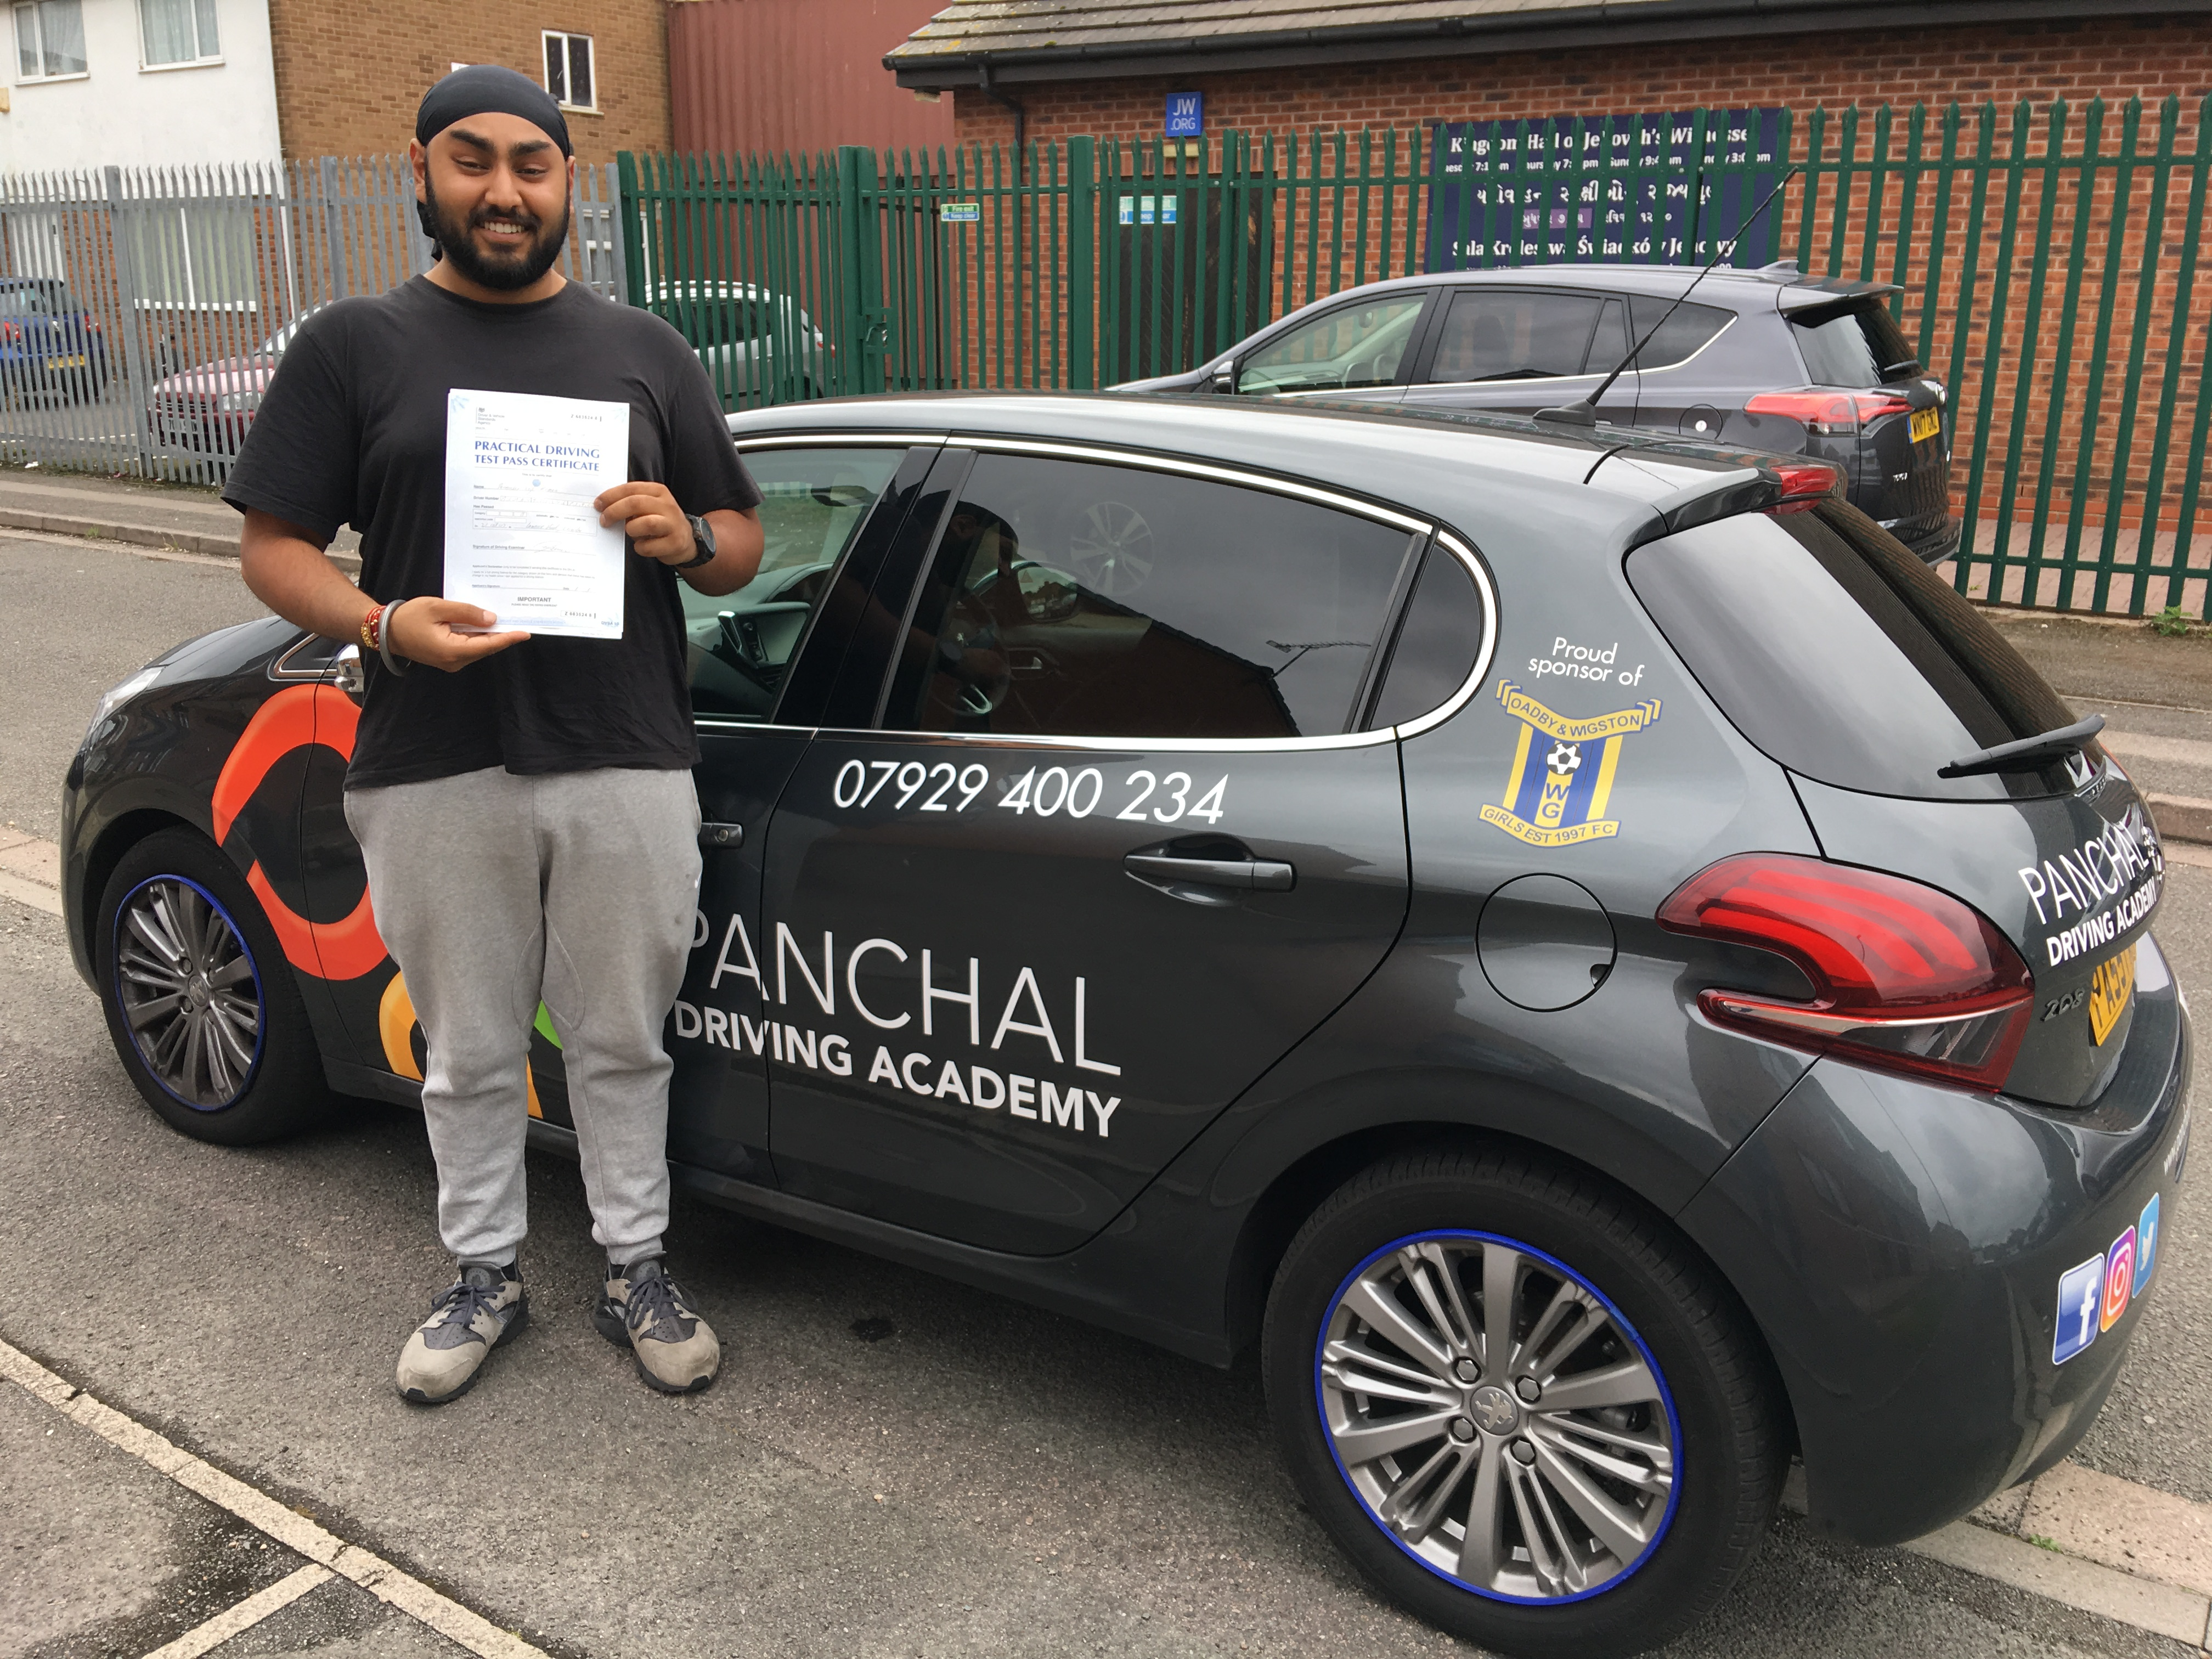 driving lessons leicester - Panchal Driving Academy - Pally